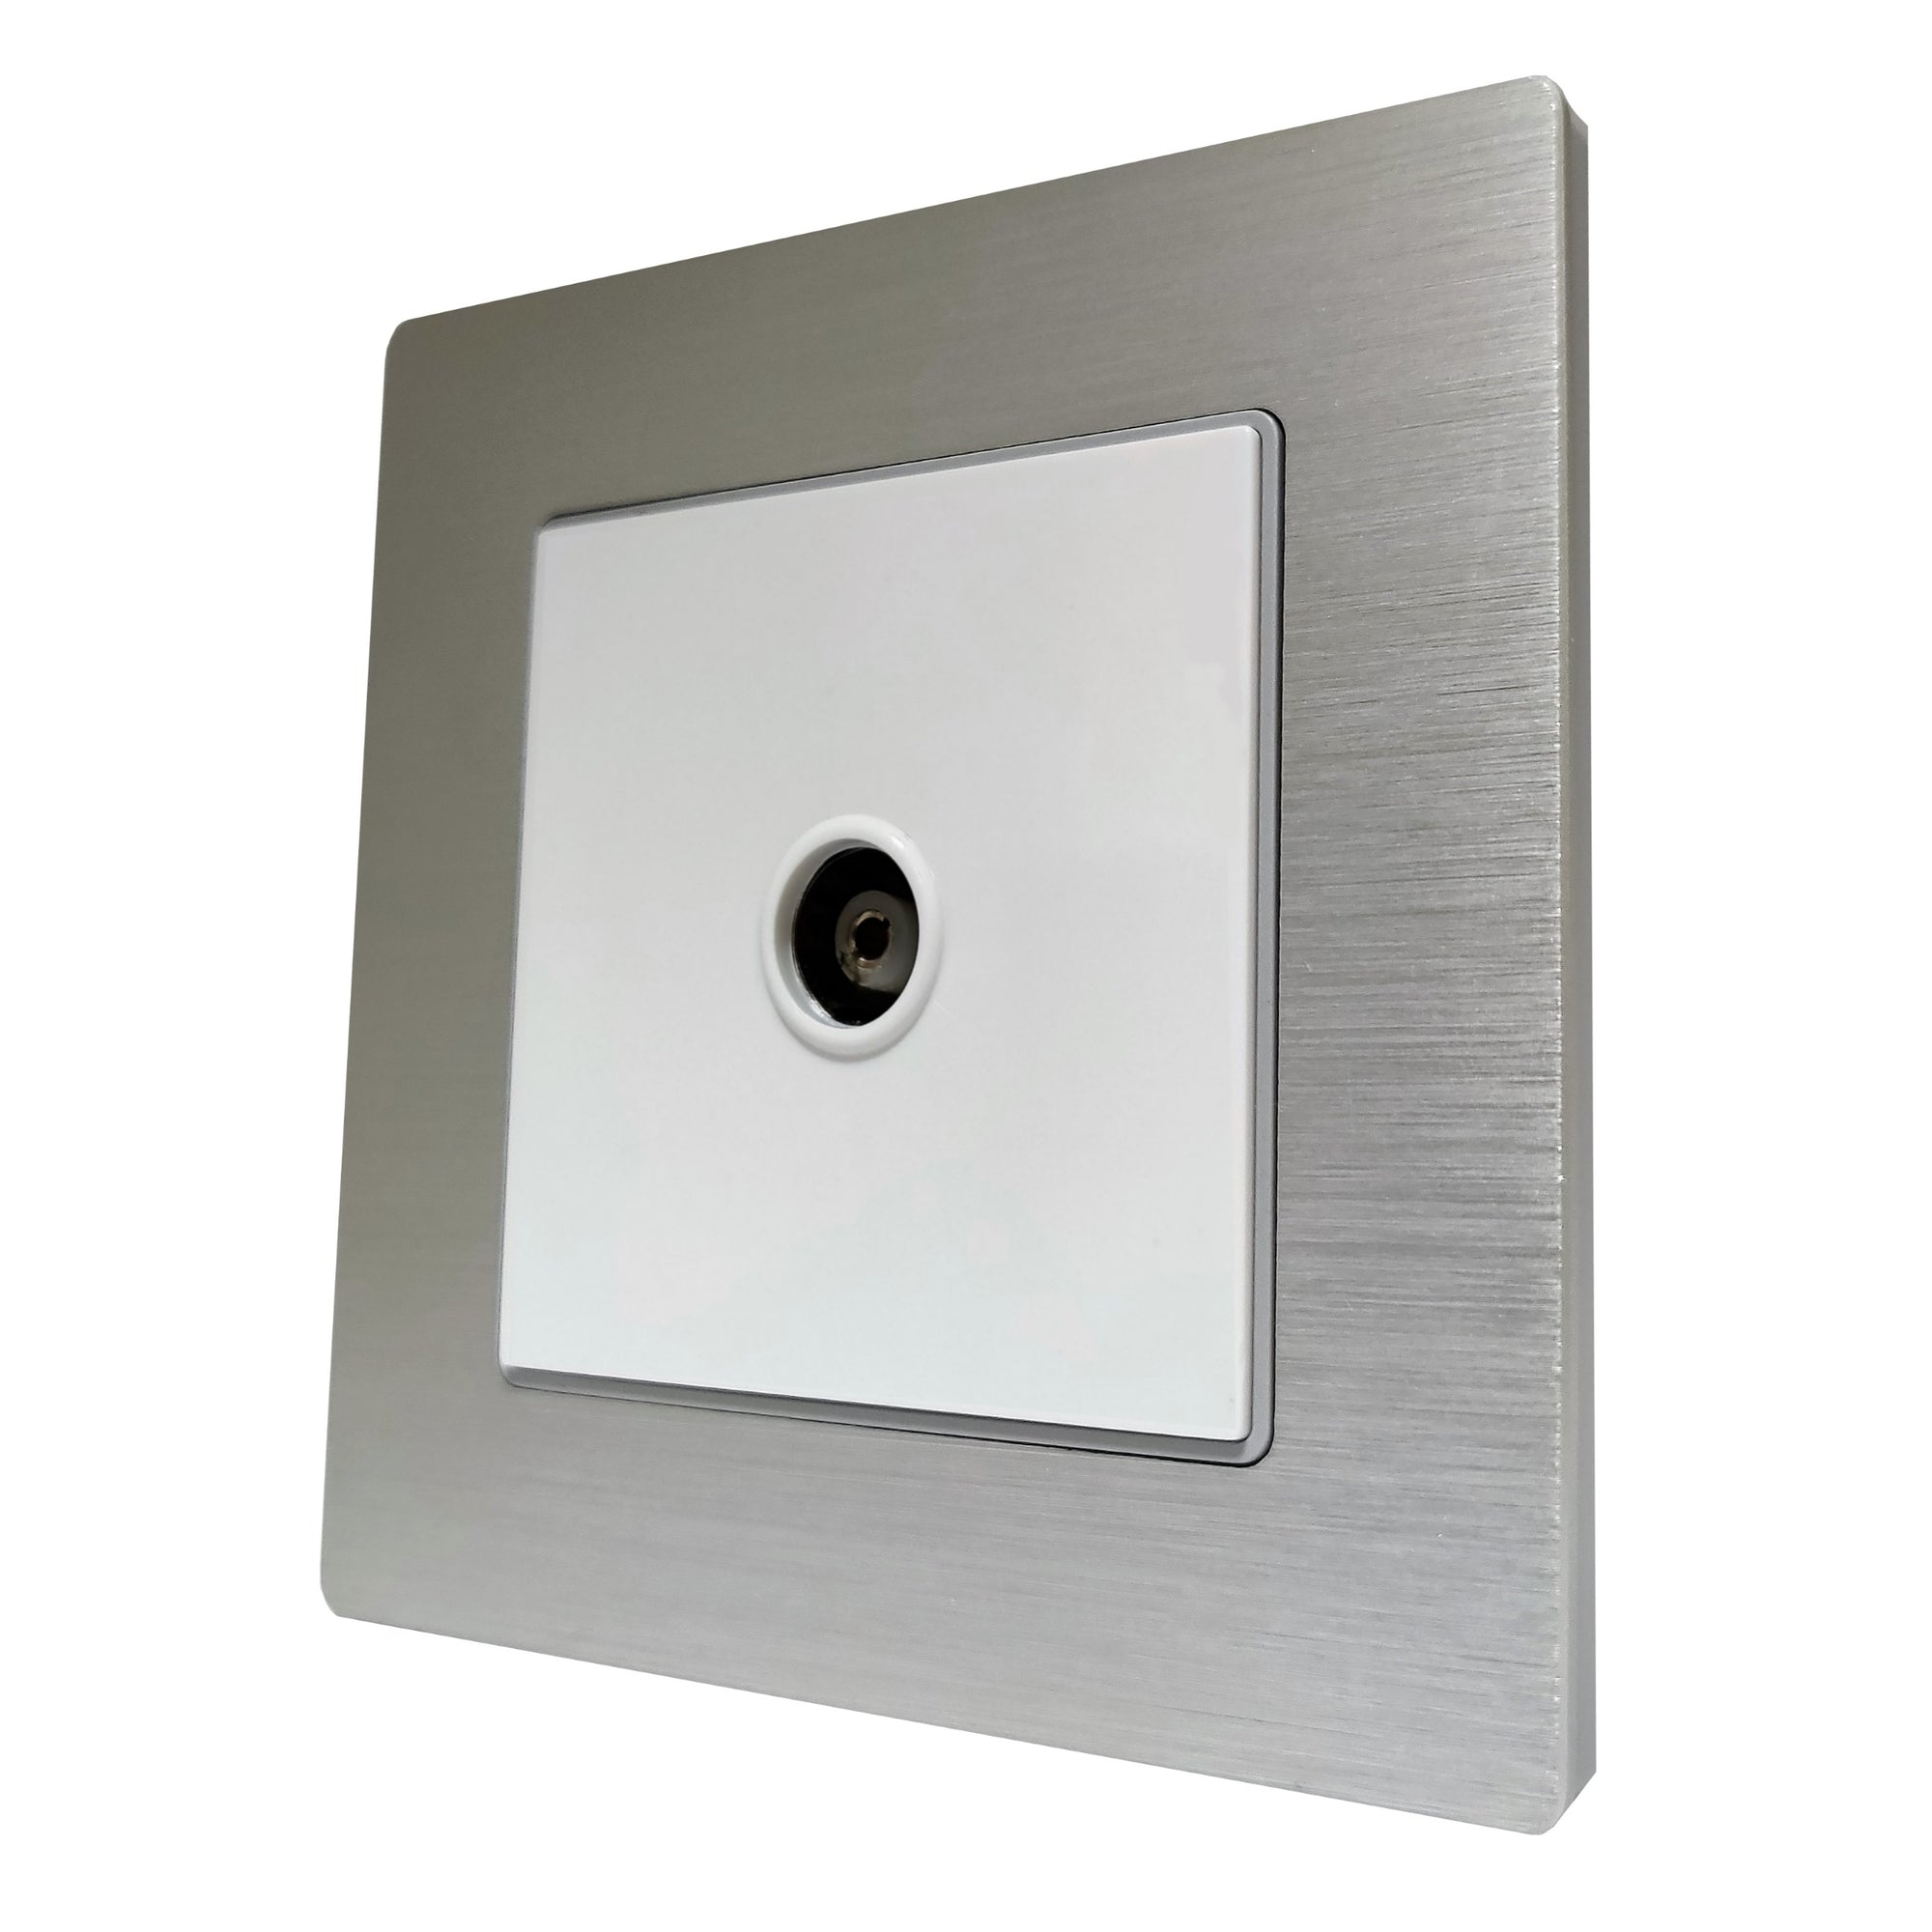 Single TV Antenna Wall Socket Coaxial Female in Silver Brushed Alum Frame & White Centre